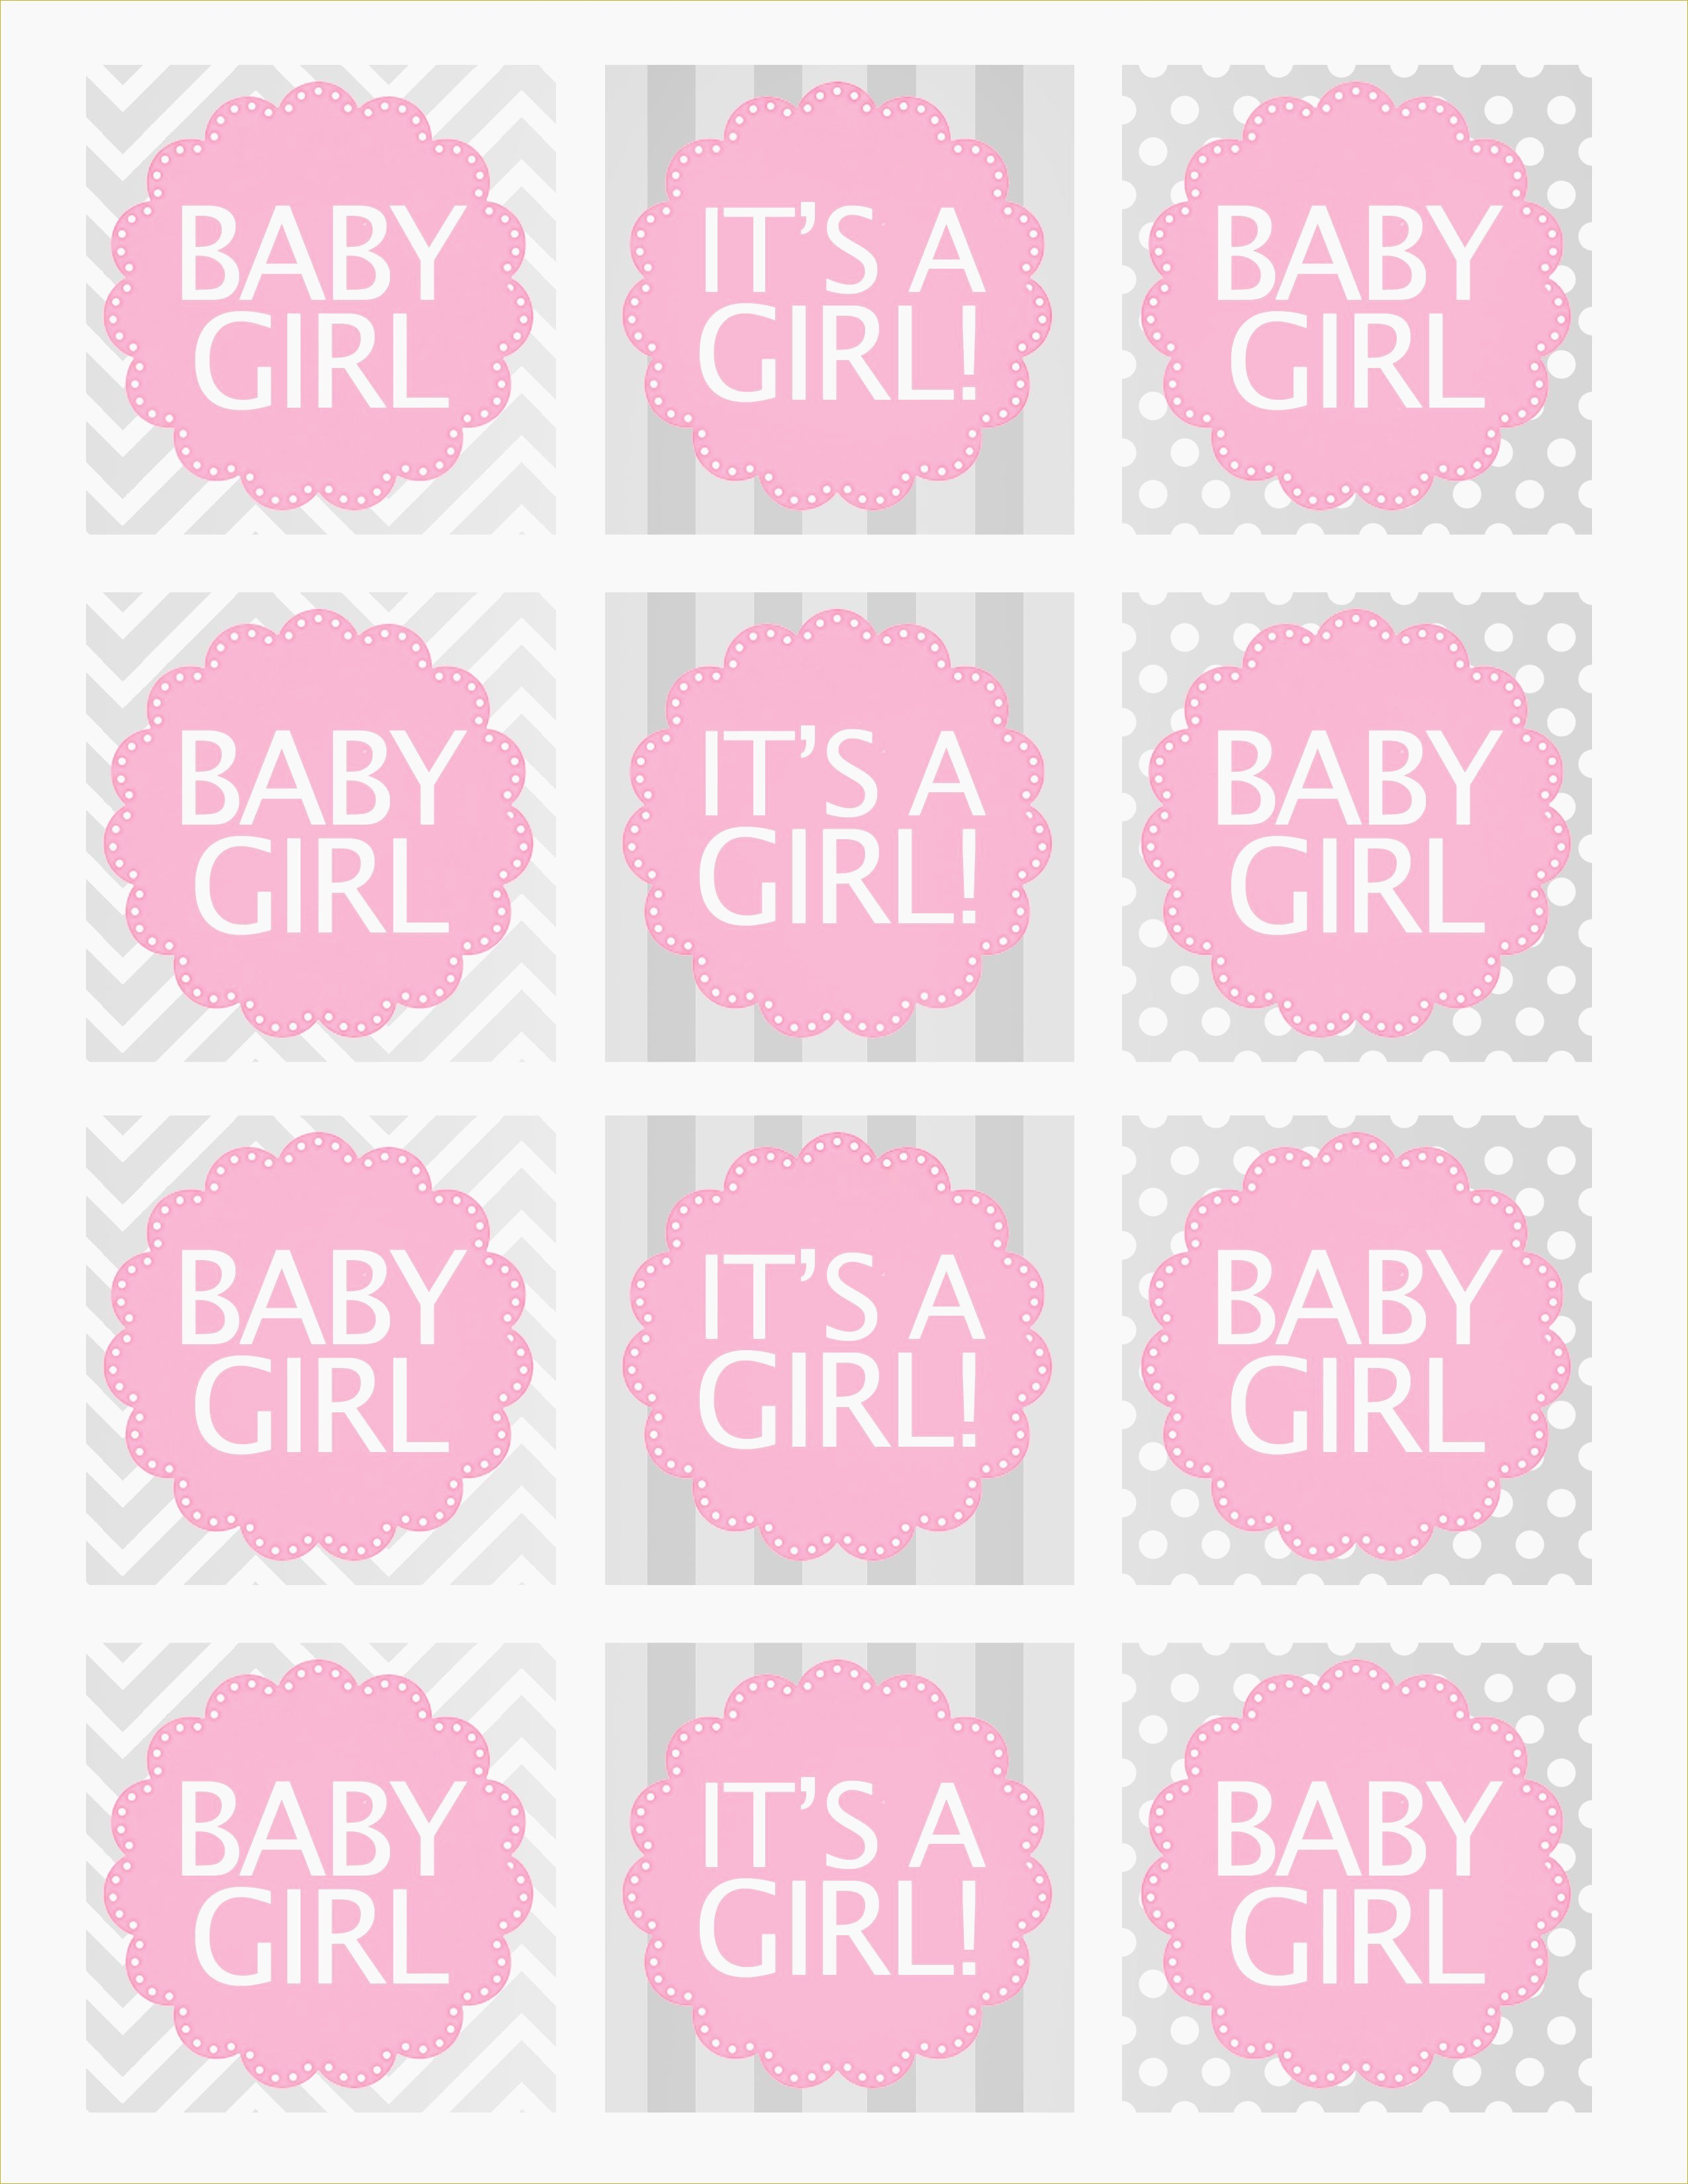 Inspirational Elephant Baby Shower Templates | Www.pantry-Magic - Free Printable Baby Shower Favor Tags Template